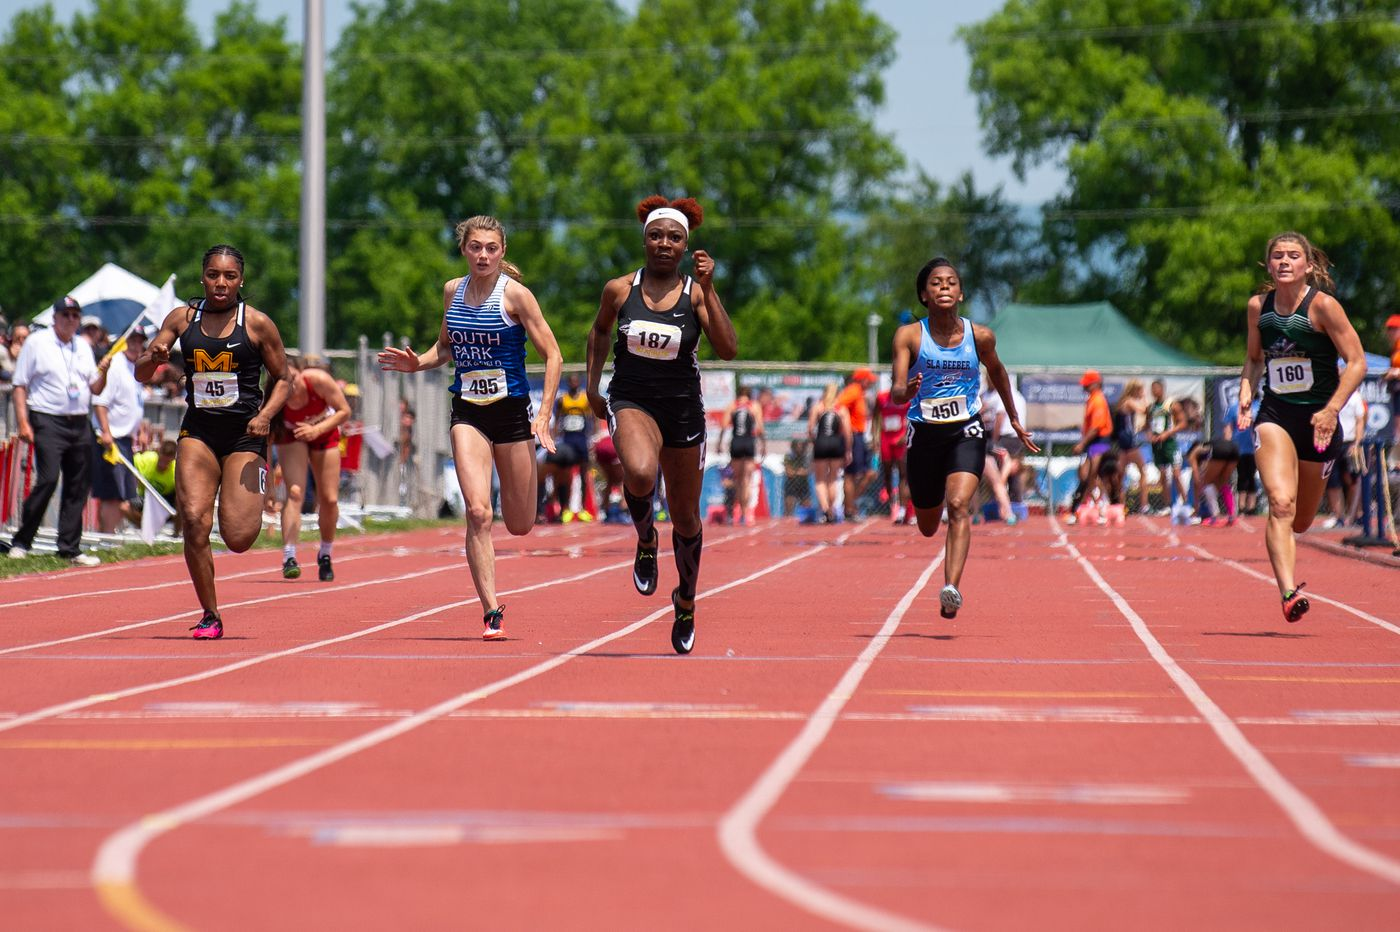 PIAA state track and field championships: Full results from Saturday's action